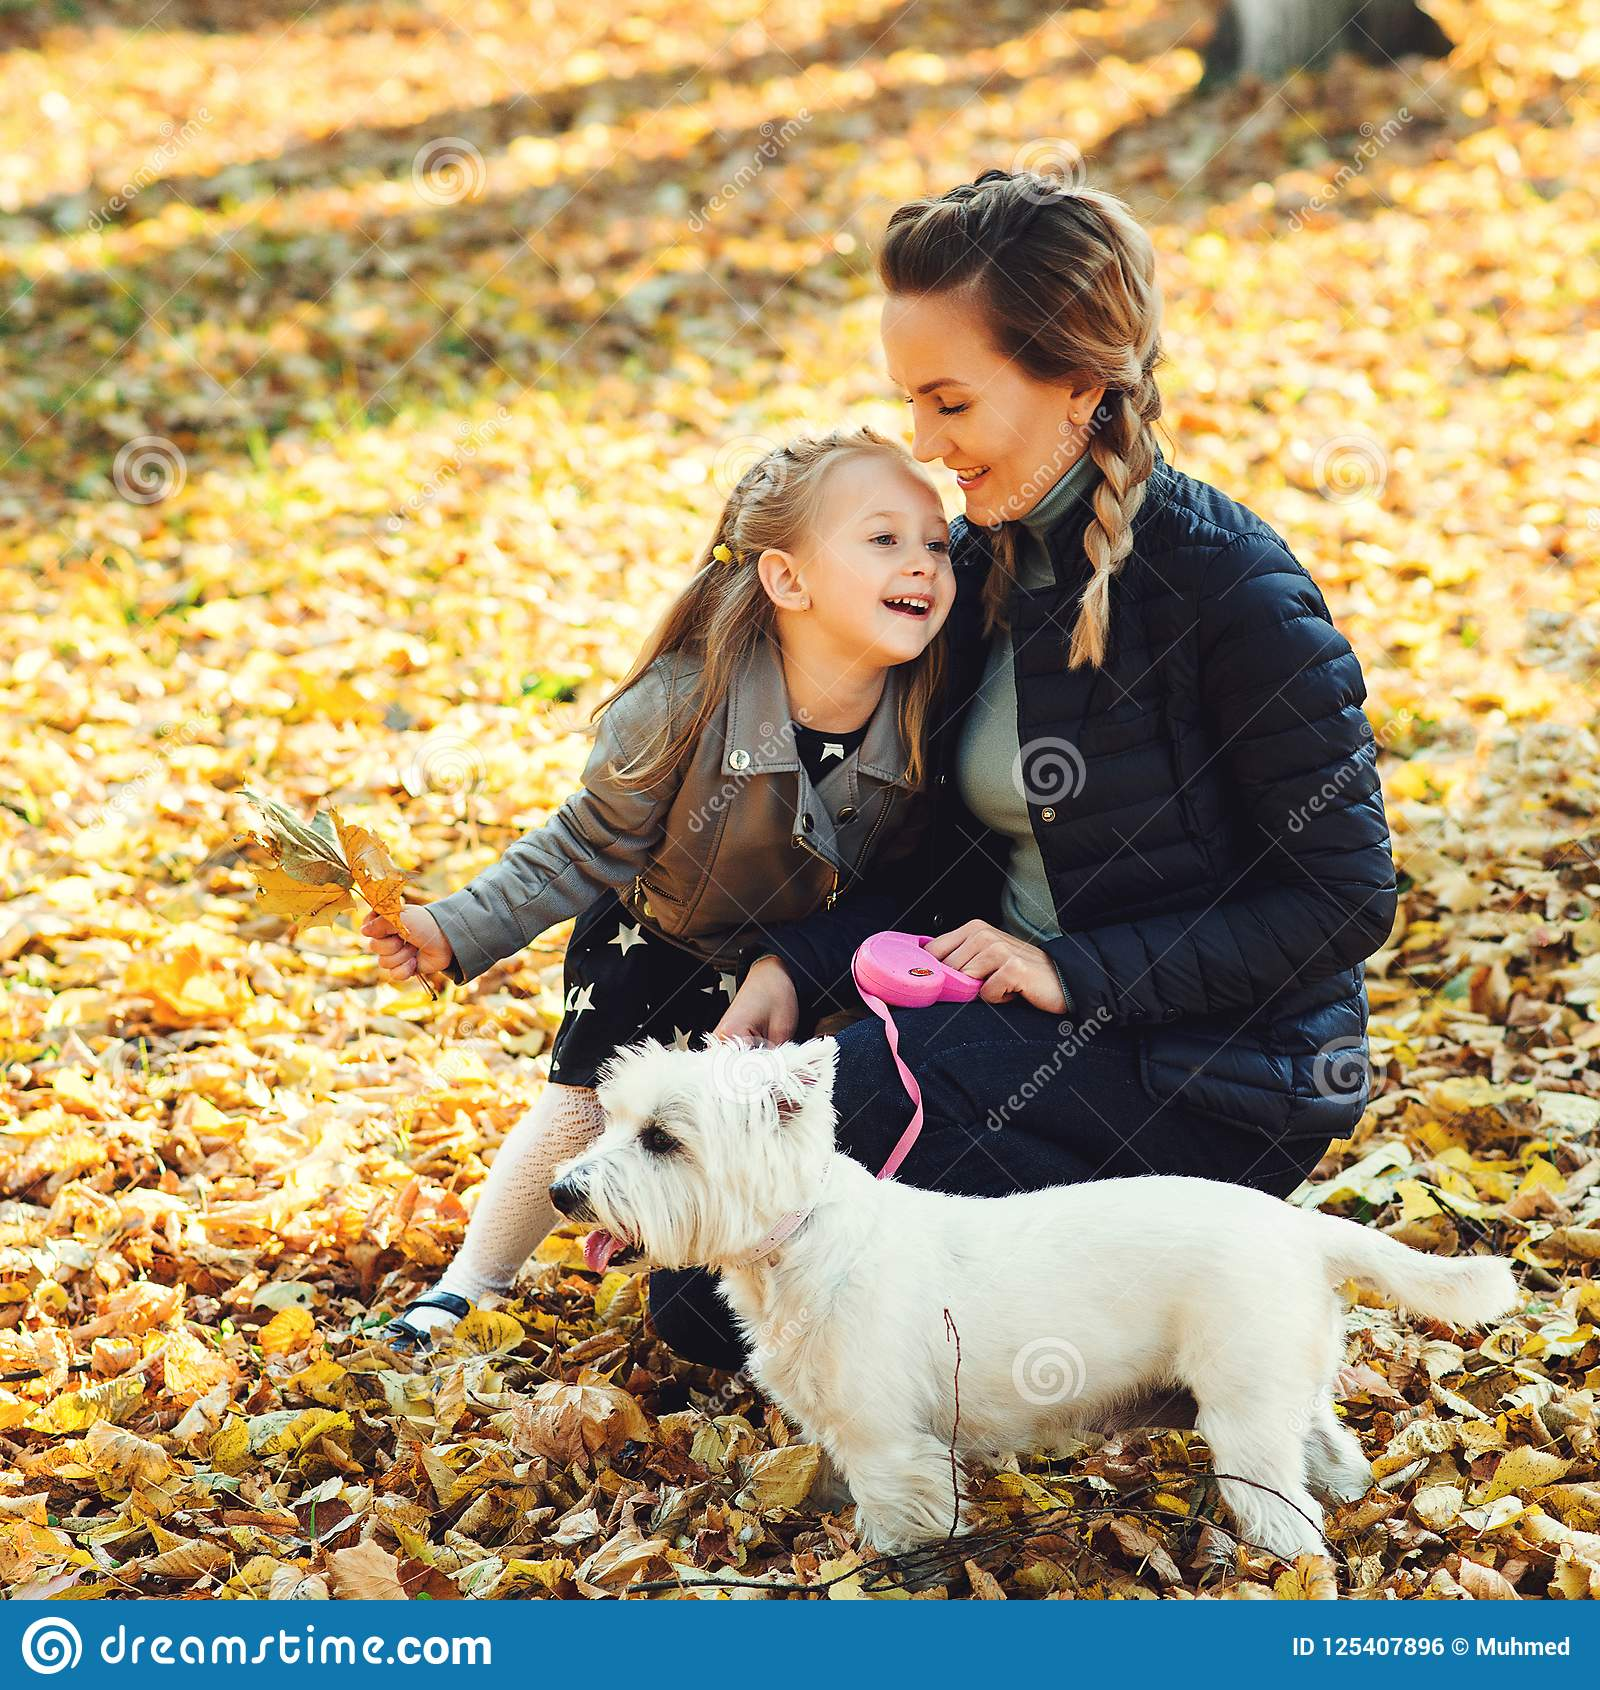 Happy family walking with dog in autumn park. Young mother and daughter with white dog having fun in fallen leaves. Autumn holiday